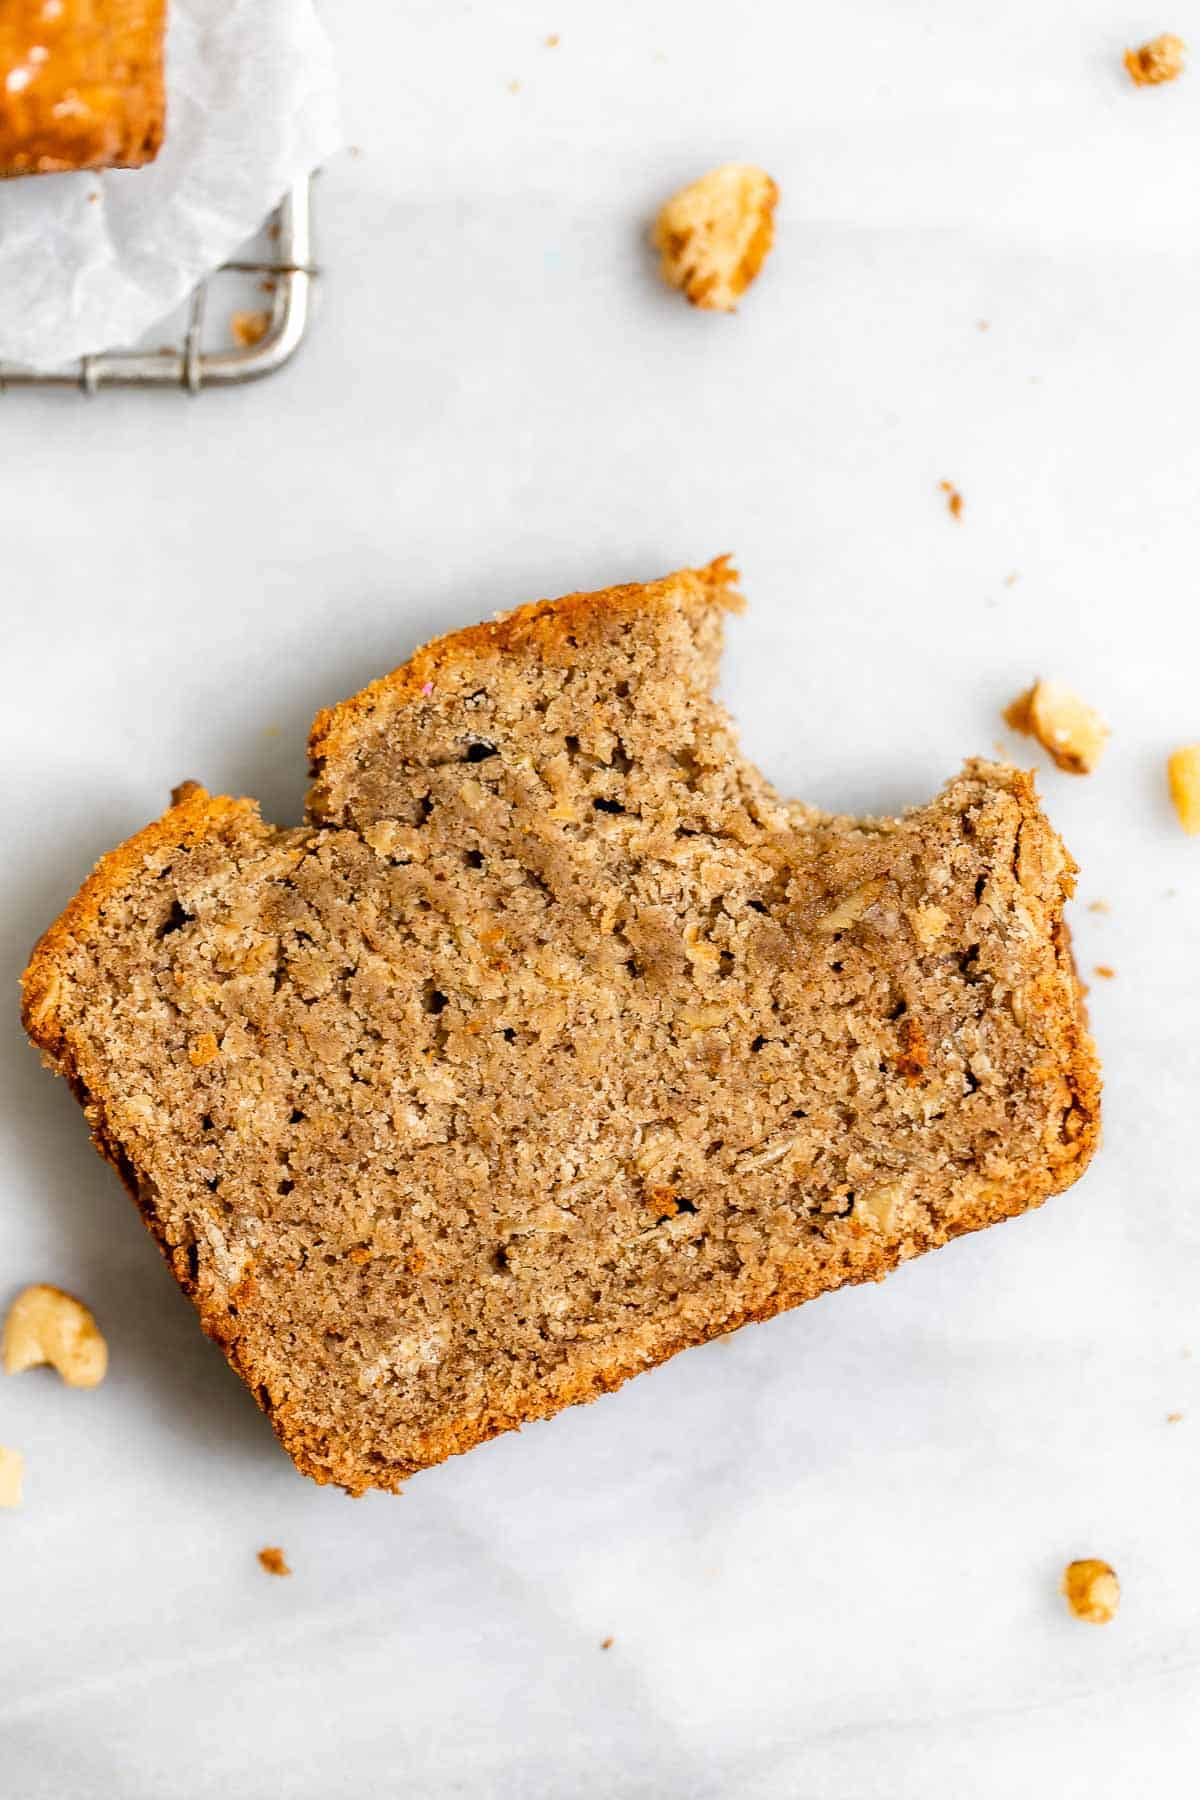 Up close image of the final vegan banana bread to show texture.